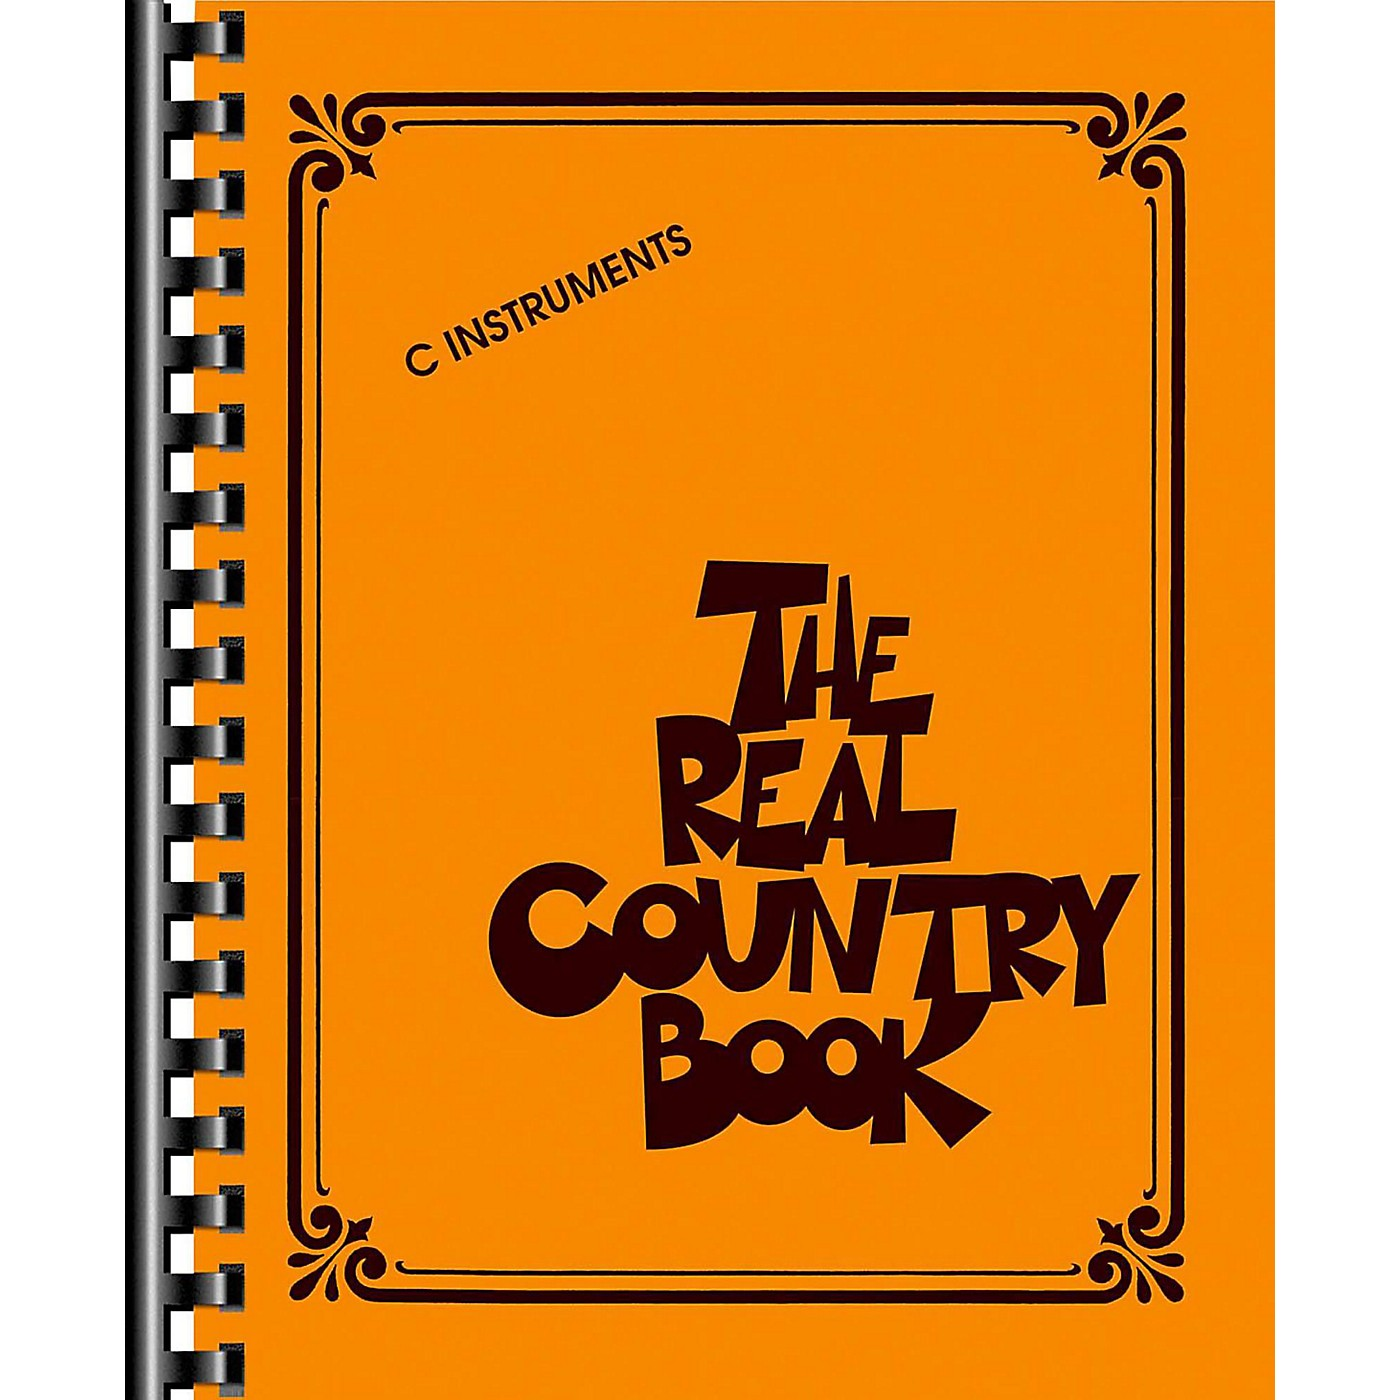 Hal Leonard The Real Country Book - C Edition thumbnail